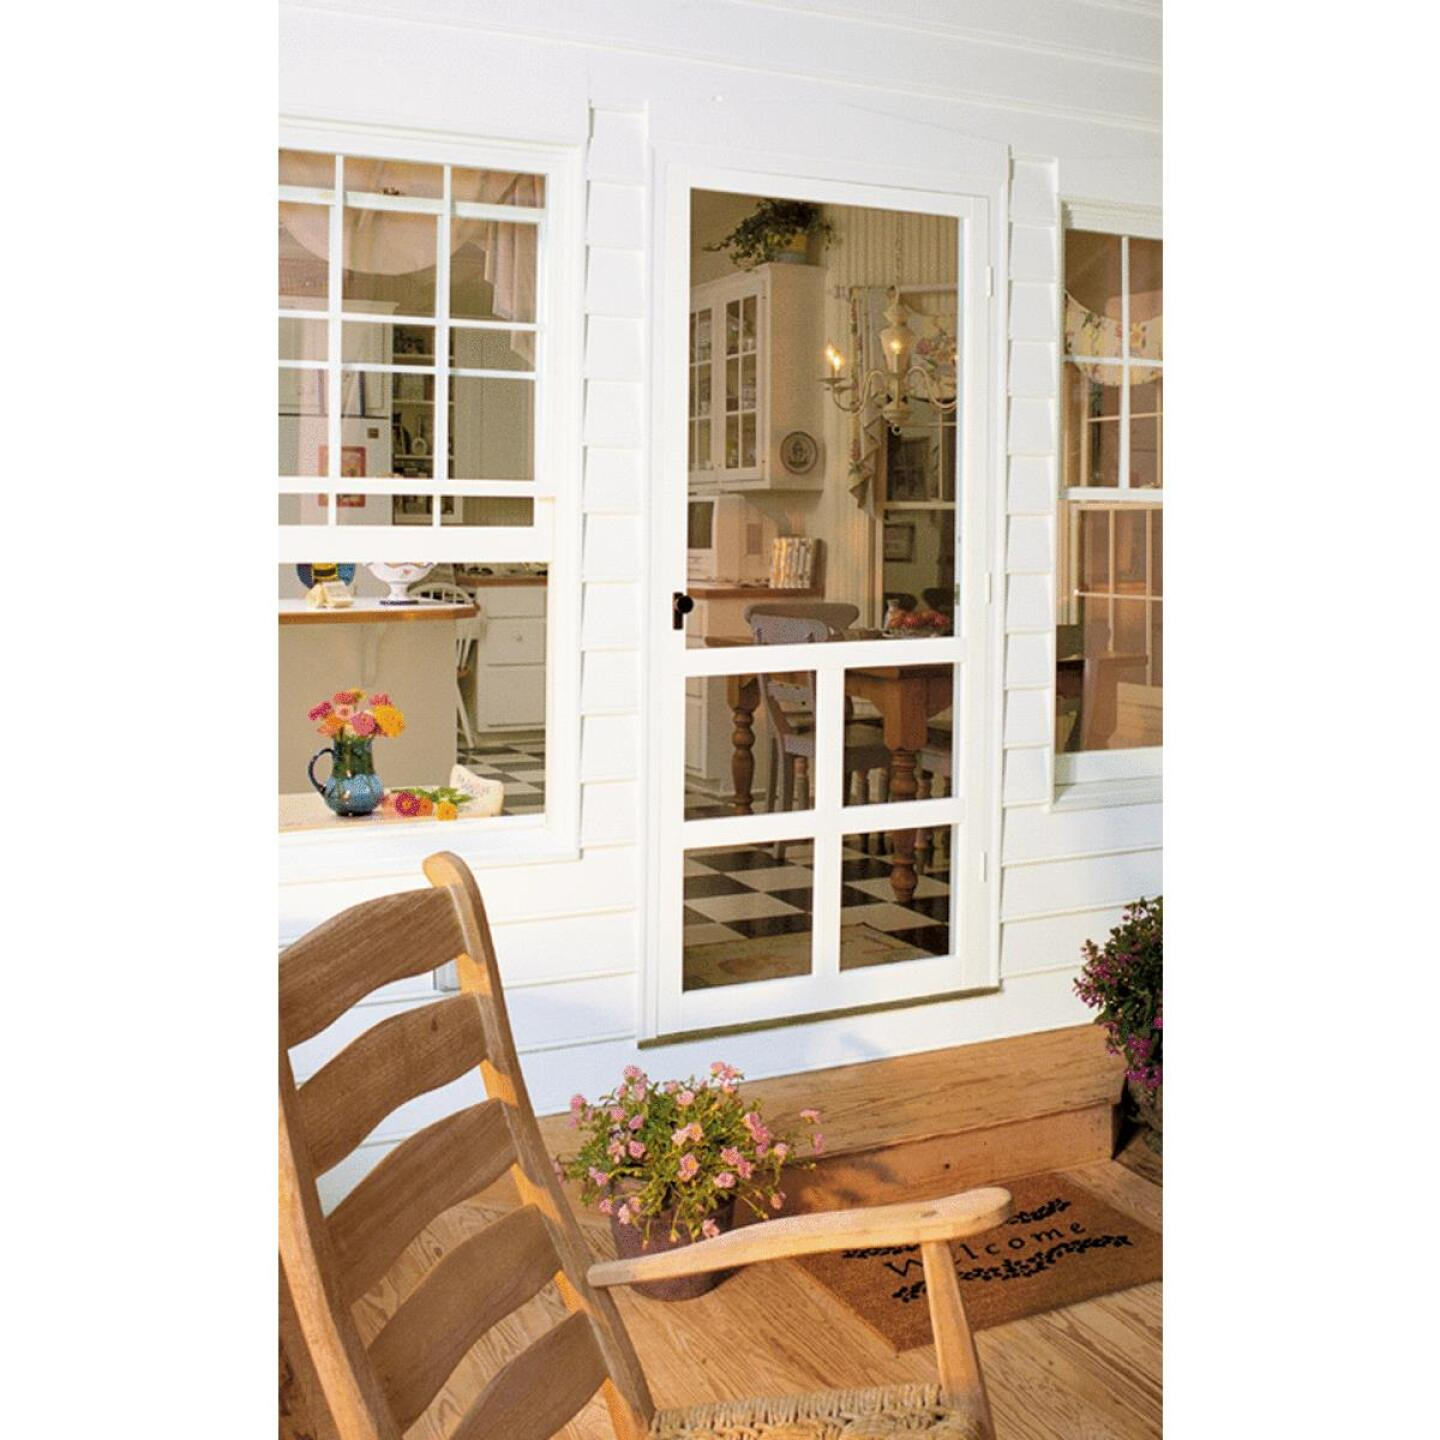 Snavely Kimberly Bay Victoria 32 In. W. x 80 In. H. x 1 In. Thick White Vinyl Screen Door Image 1